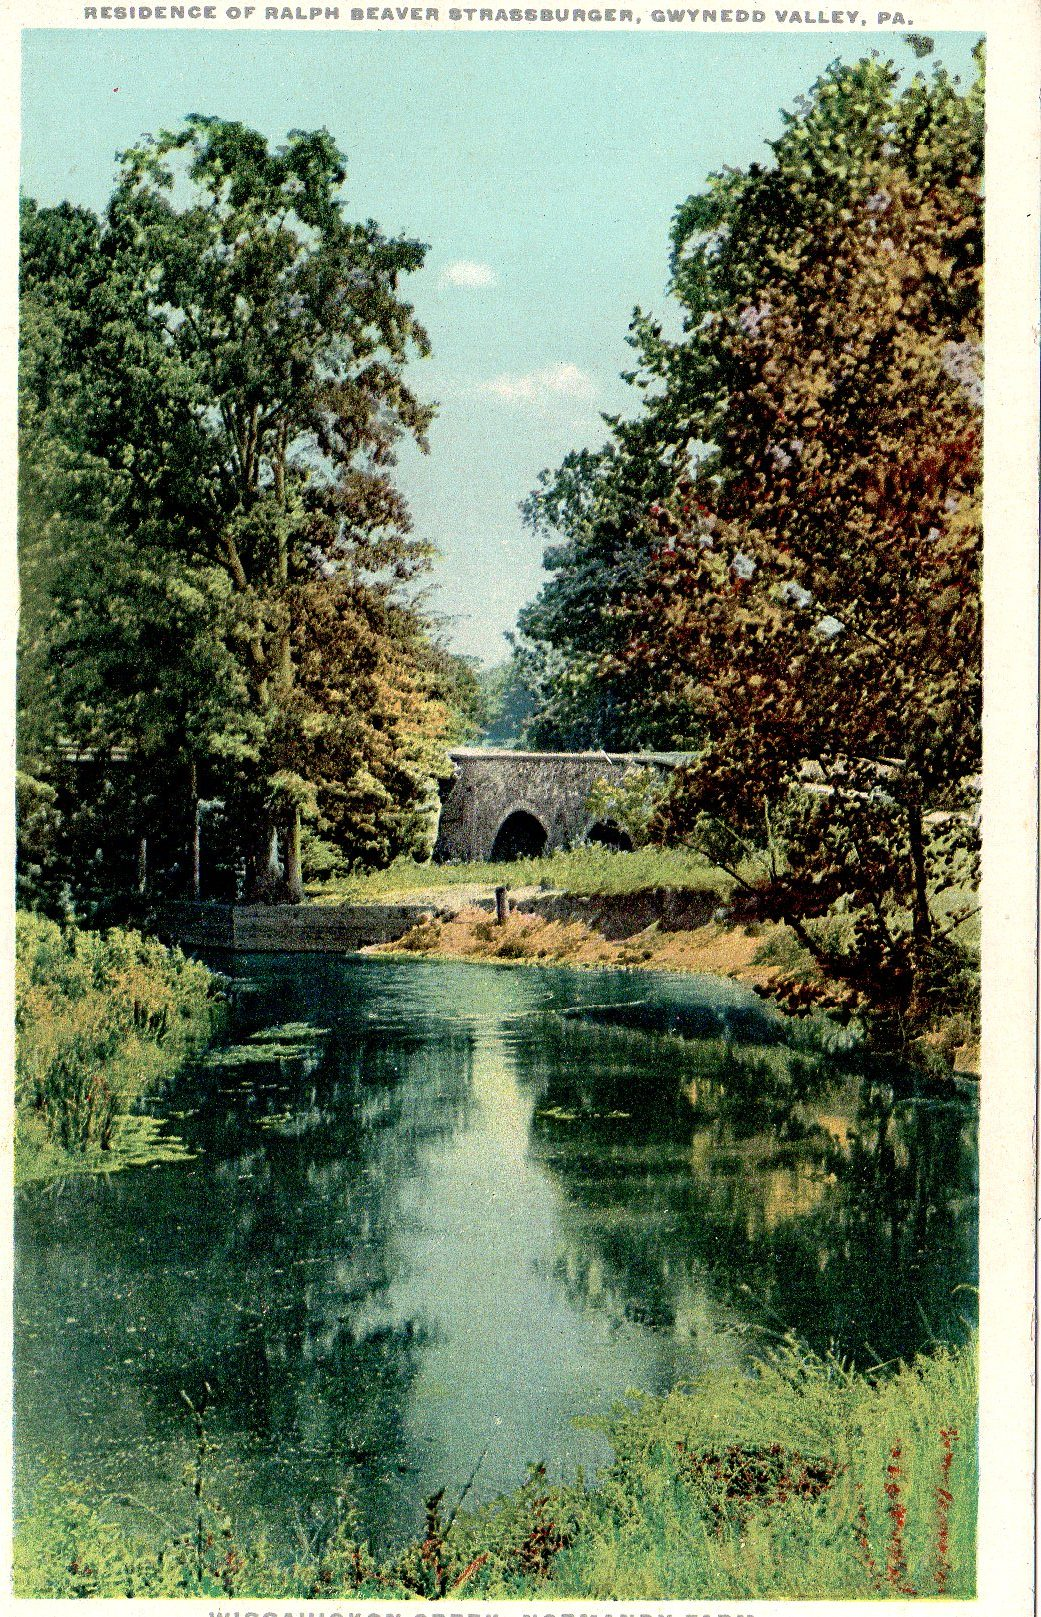 Post Card Collection (E Simon)_2682_81_Home Ralph Beaver Strassburger, Gwynedd Valley, Pa_Wissahickon Creek, Normandy Farm